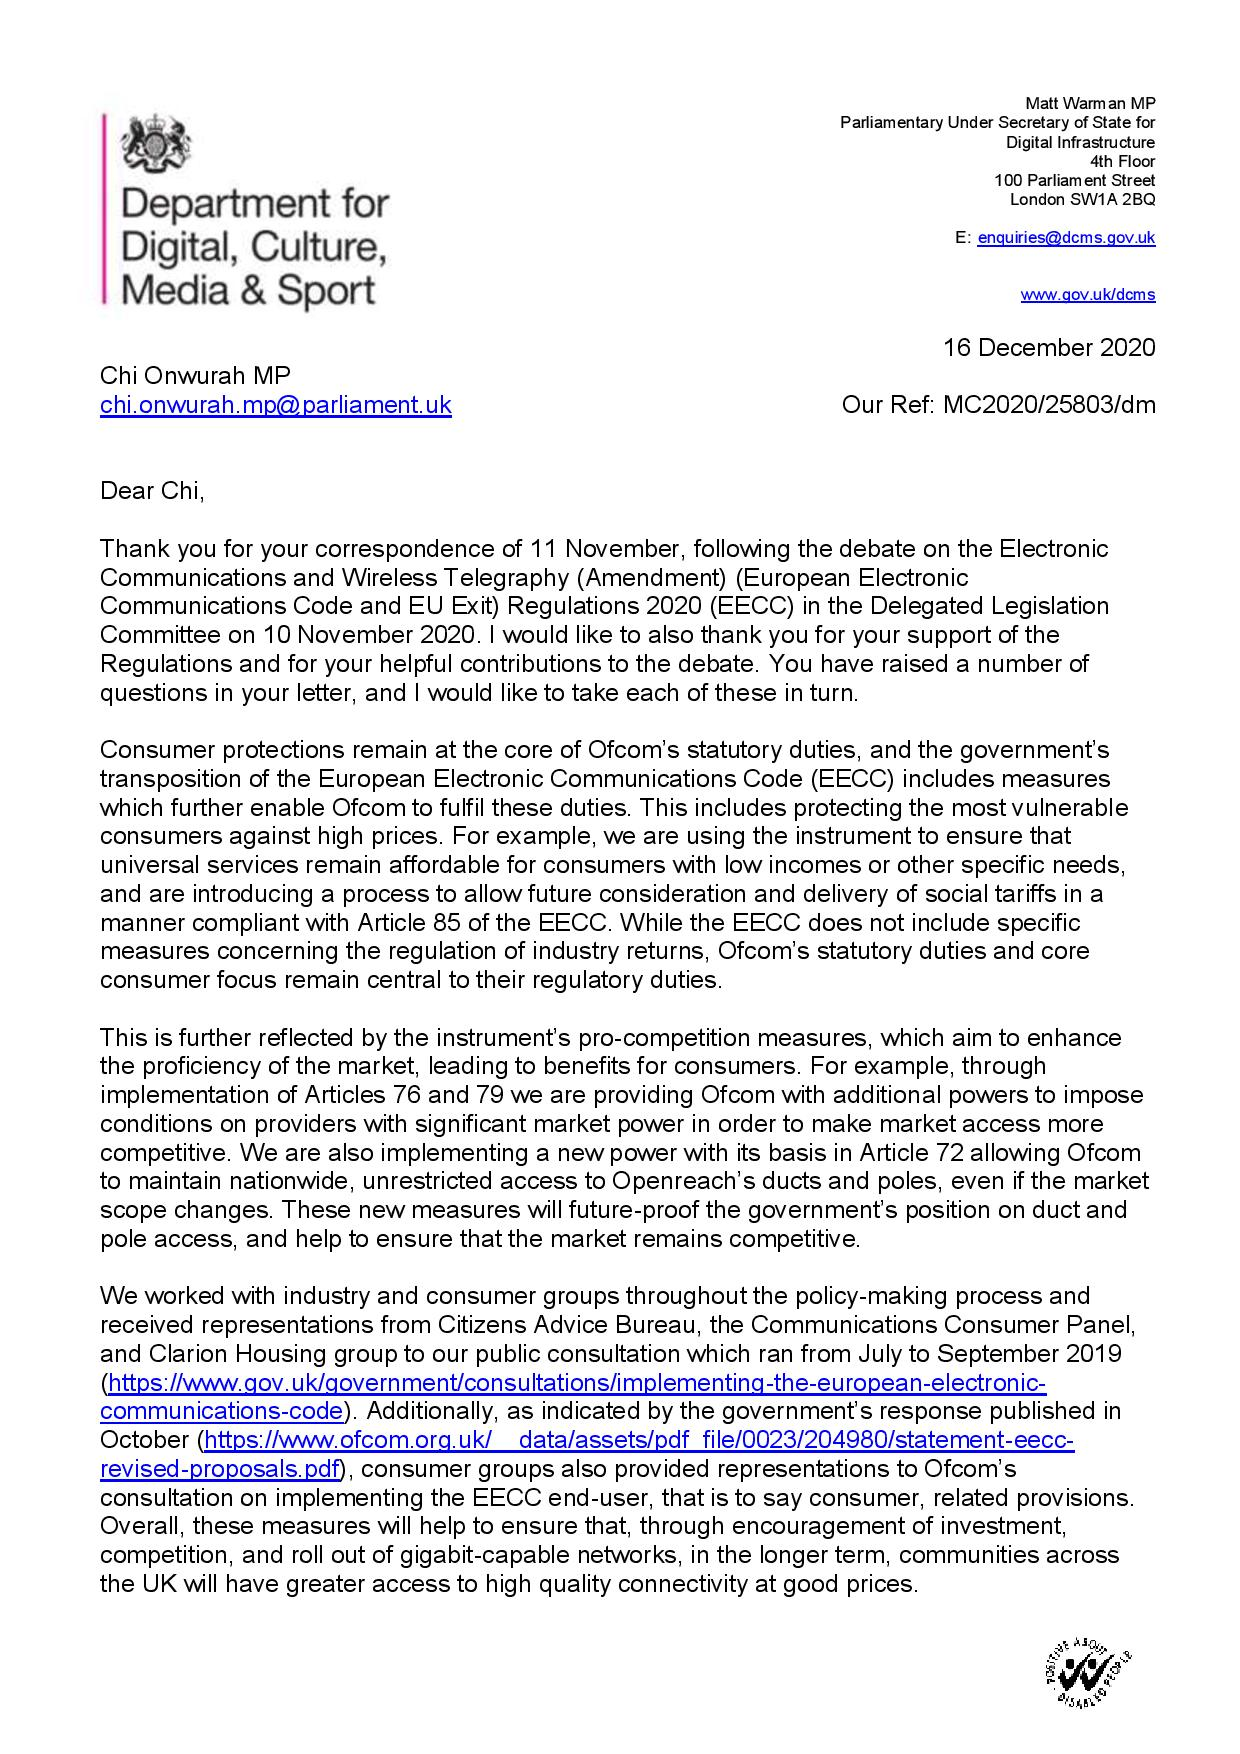 Government response to Chi's questions following the debate on the Electronic Communications and Wireless Telegraphy (Amendment) (European Electronic Communications Code and EU Exit) Regulations 2020 (EECC)